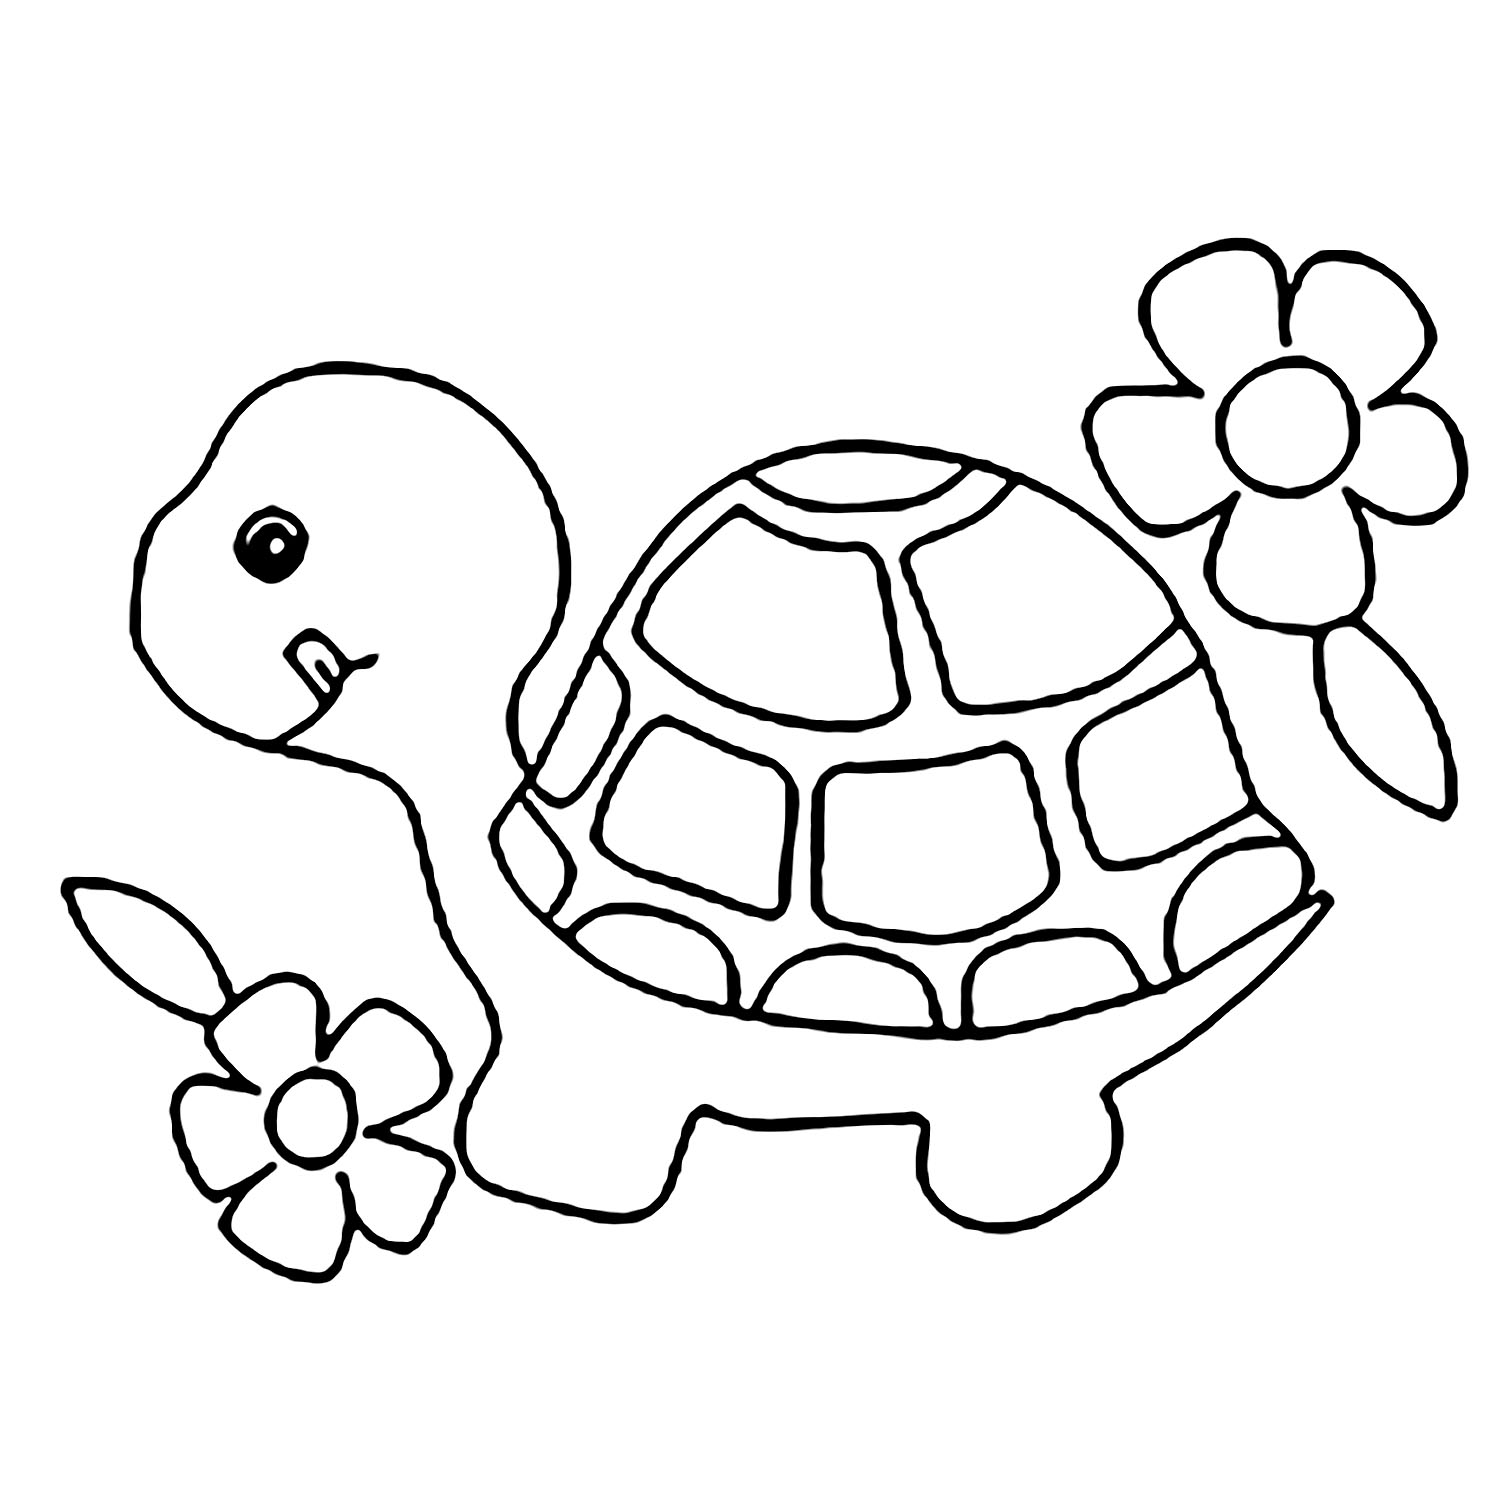 turtles colouring turtle hatchling illustrations royalty free vector turtles colouring